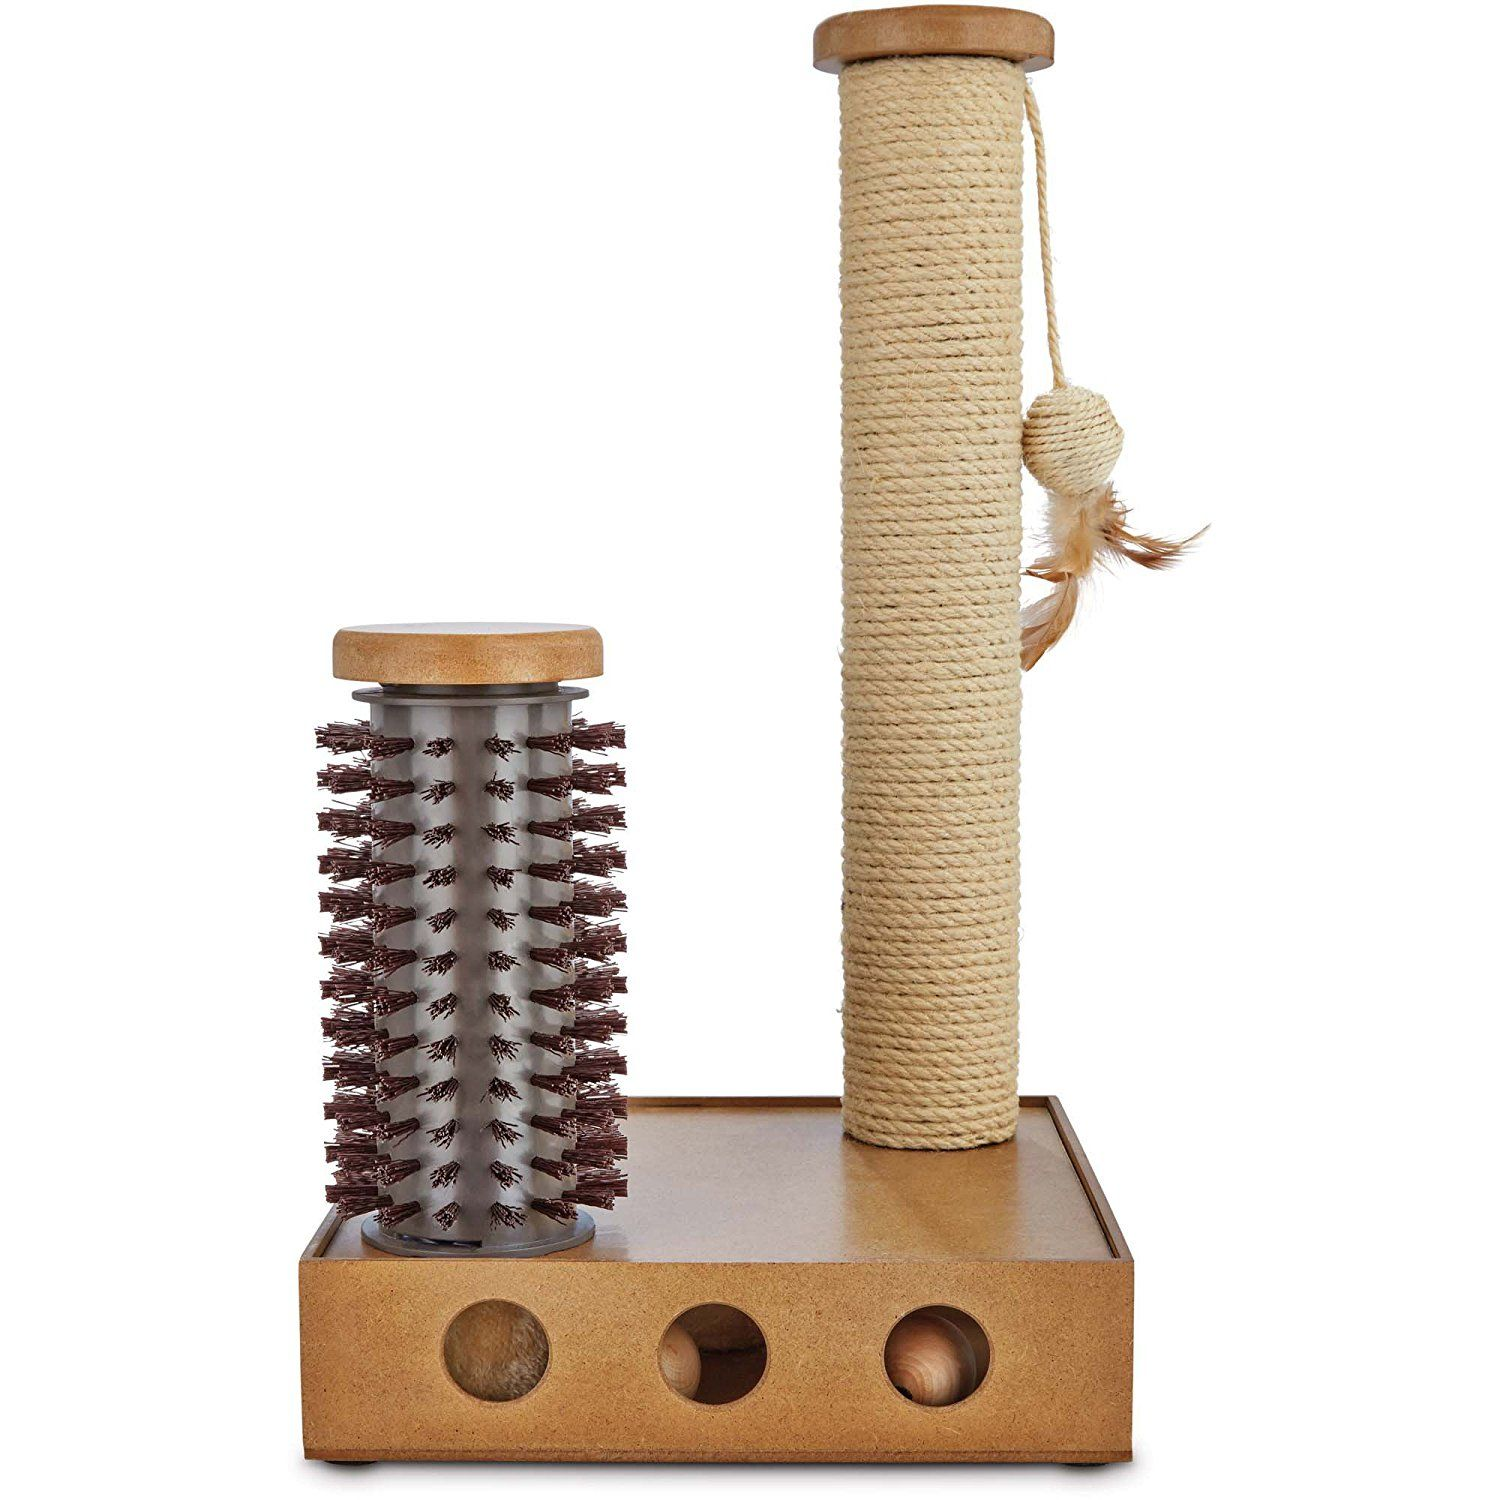 You and Me Play and Groom Scratcher You can get